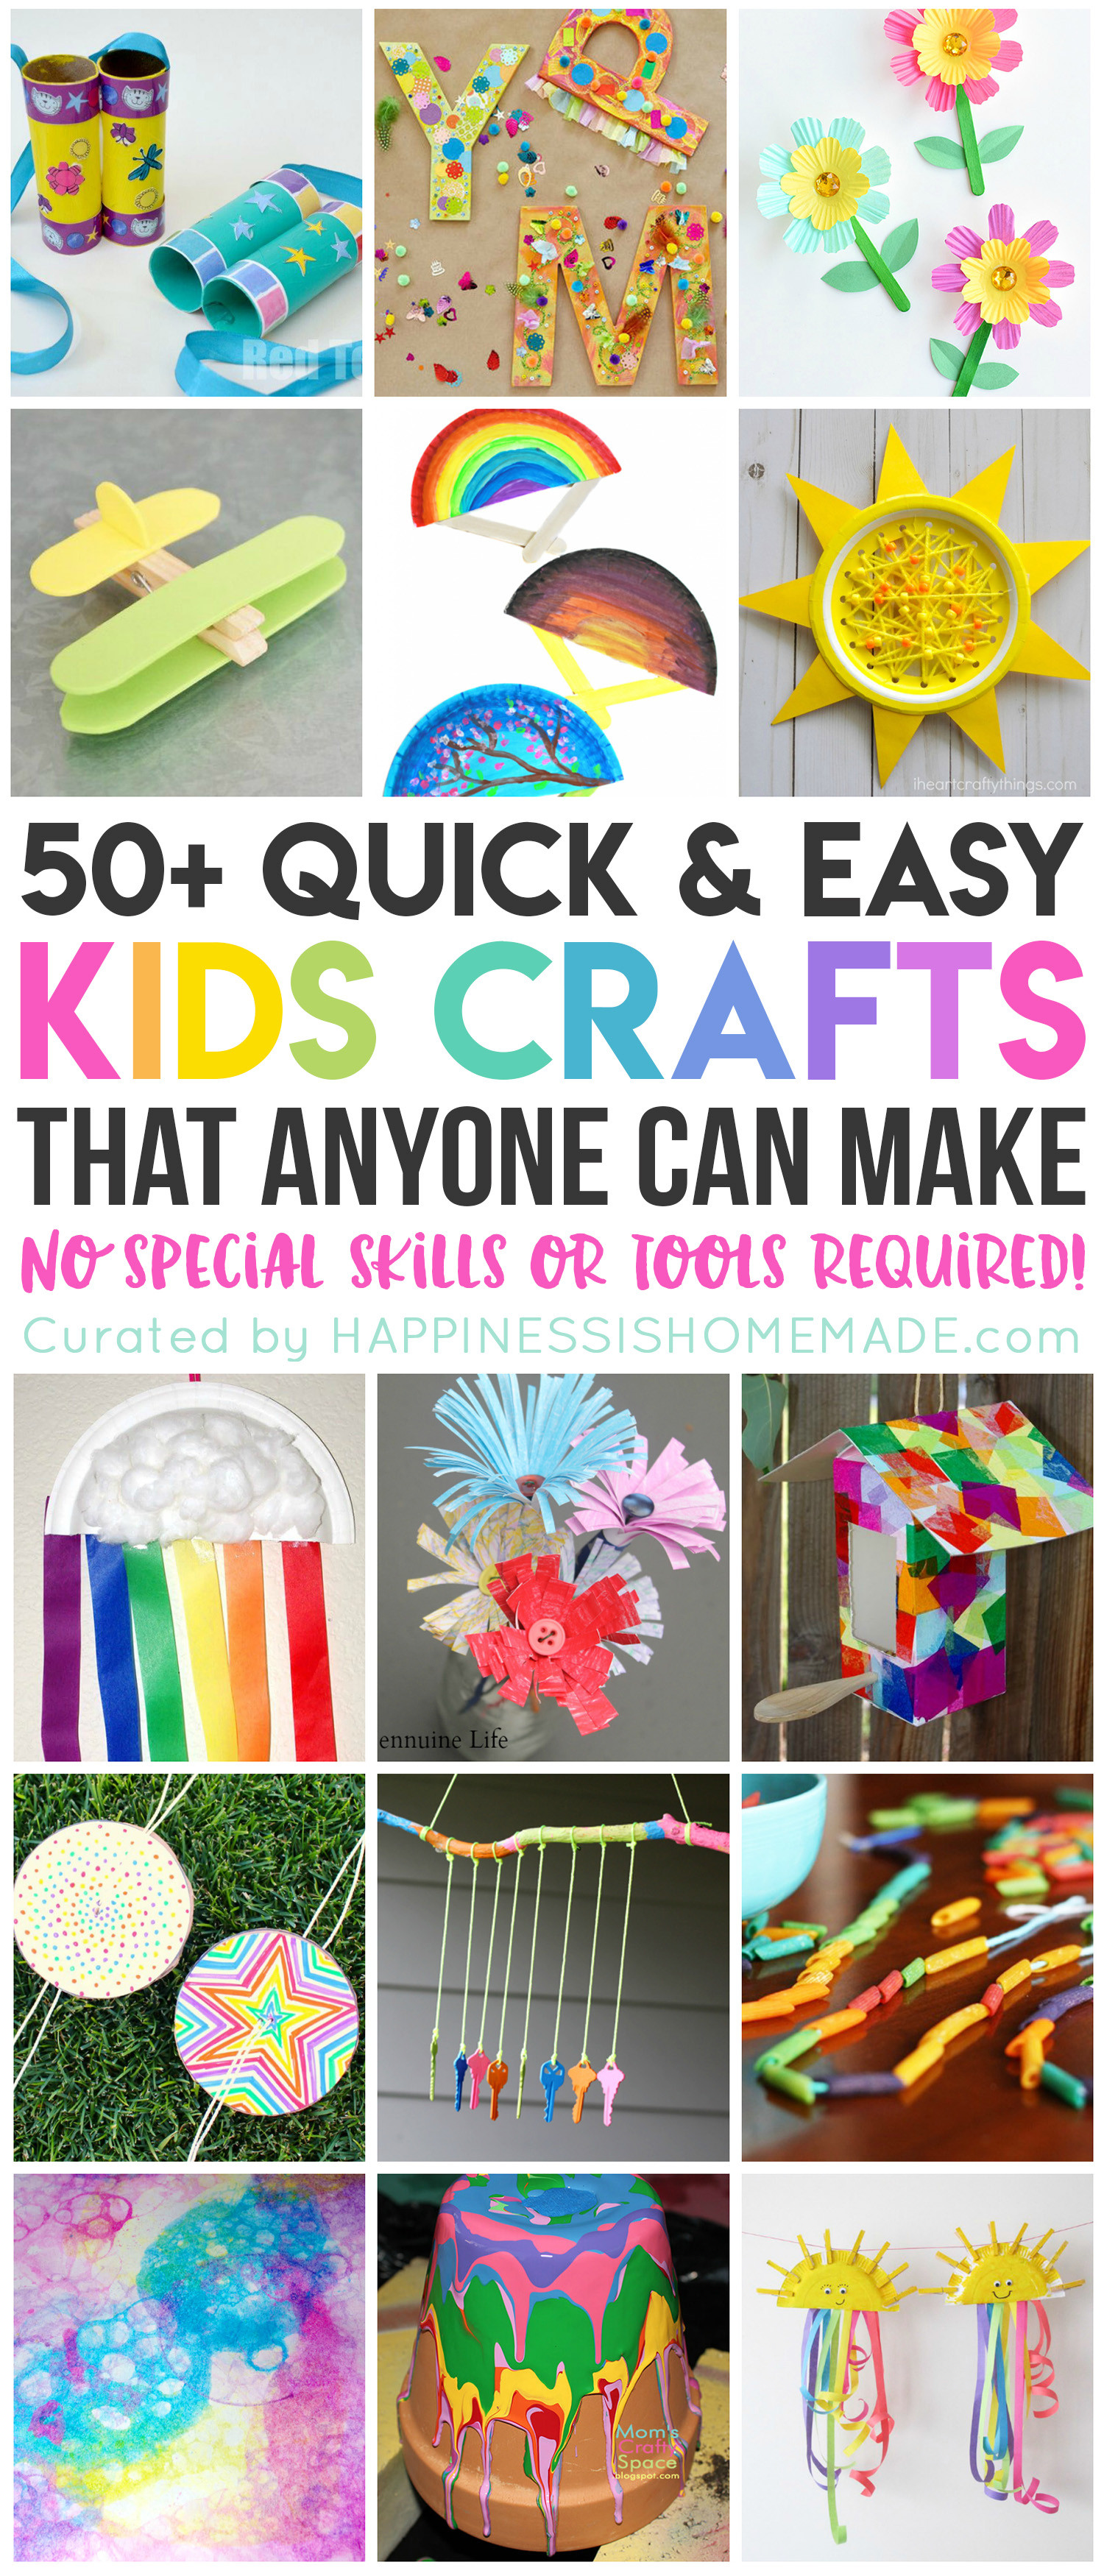 Best ideas about Quick And Easy Crafts For Kids . Save or Pin 50 Quick & Easy Kids Crafts that ANYONE Can Make Now.